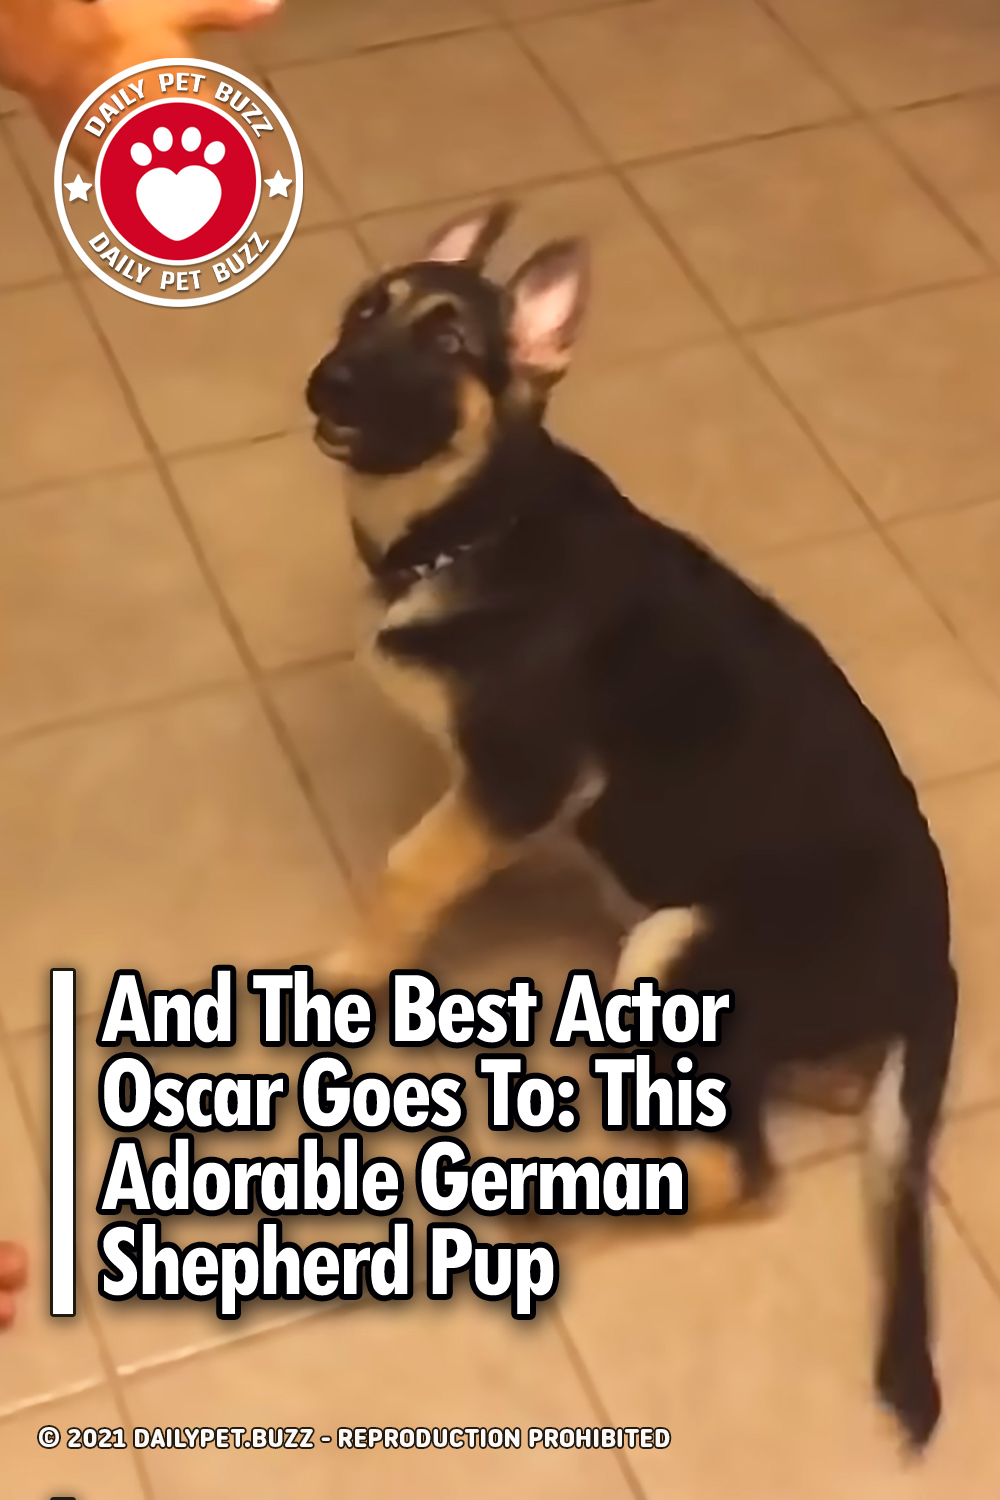 And The Best Actor Oscar Goes To: This Adorable German Shepherd Pup